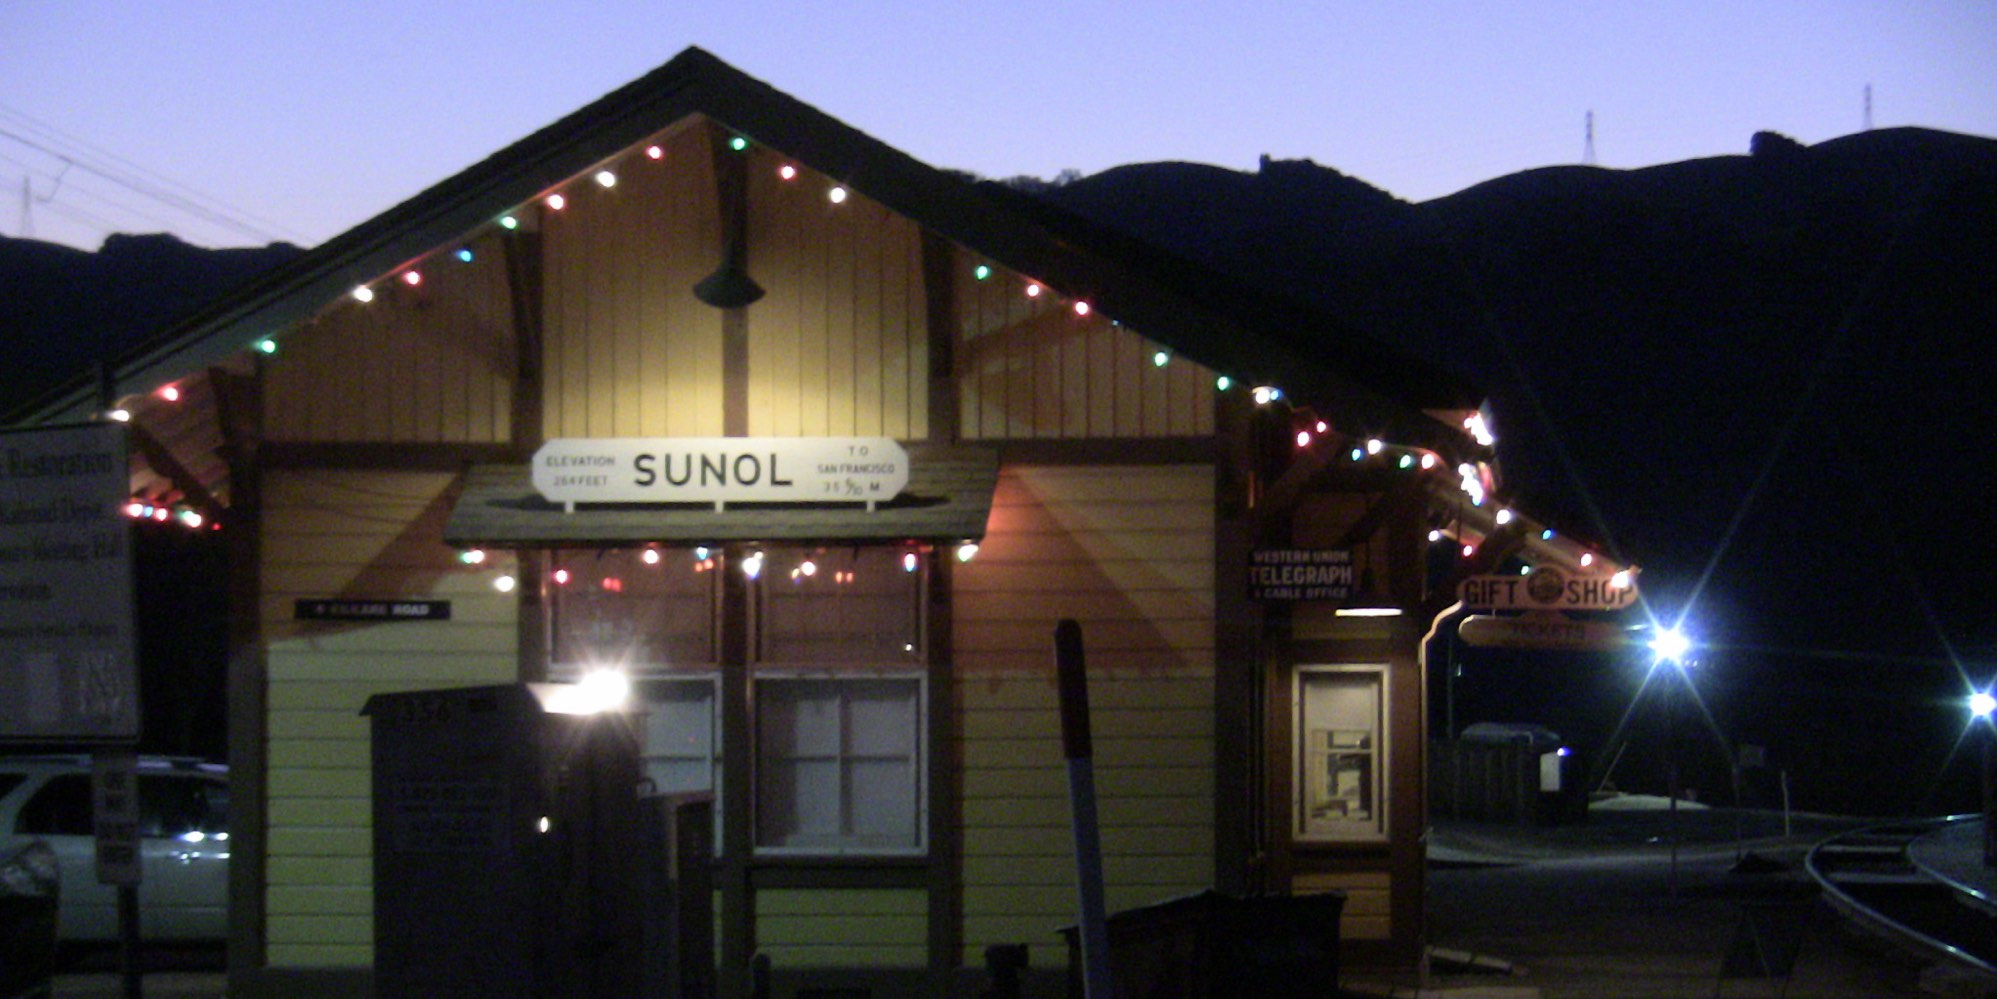 Niles Canyon Sunol Depot at Sunset with Christmas Lights